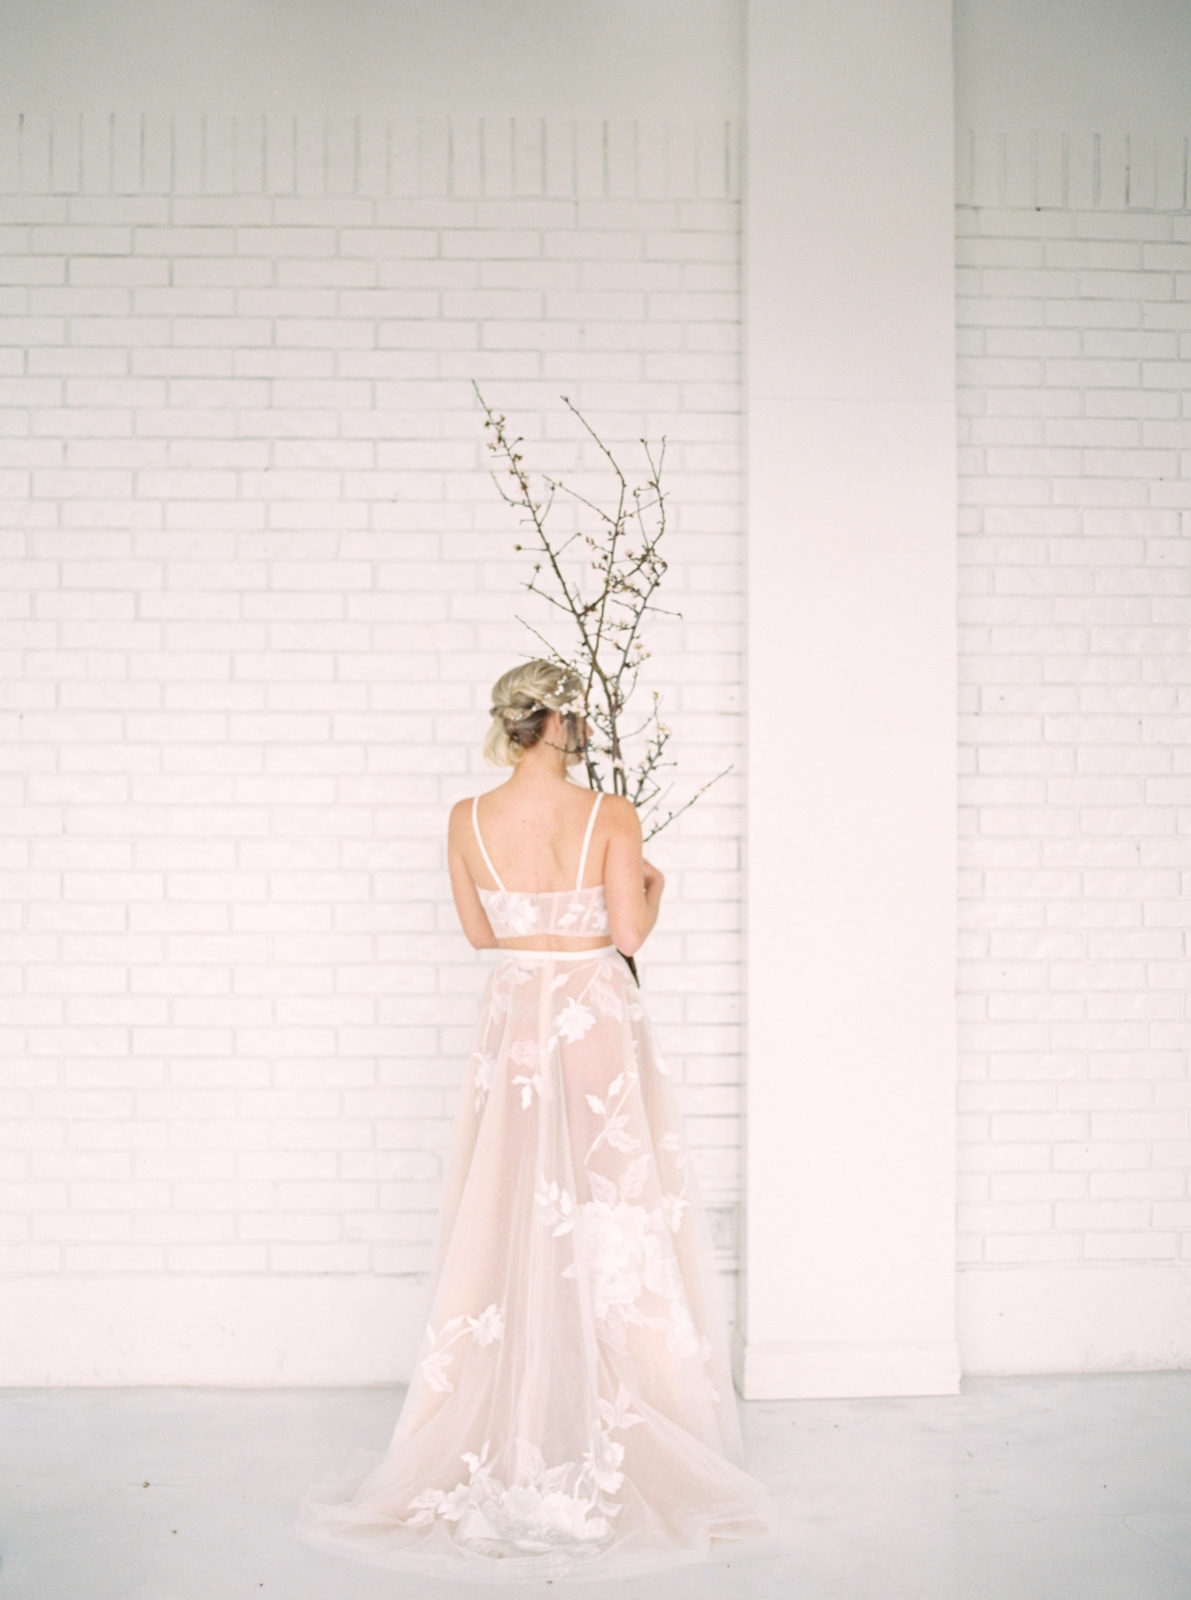 Wedding dress inspiration for Light and airy wedding styled shoot featured on Alexa Kay Events